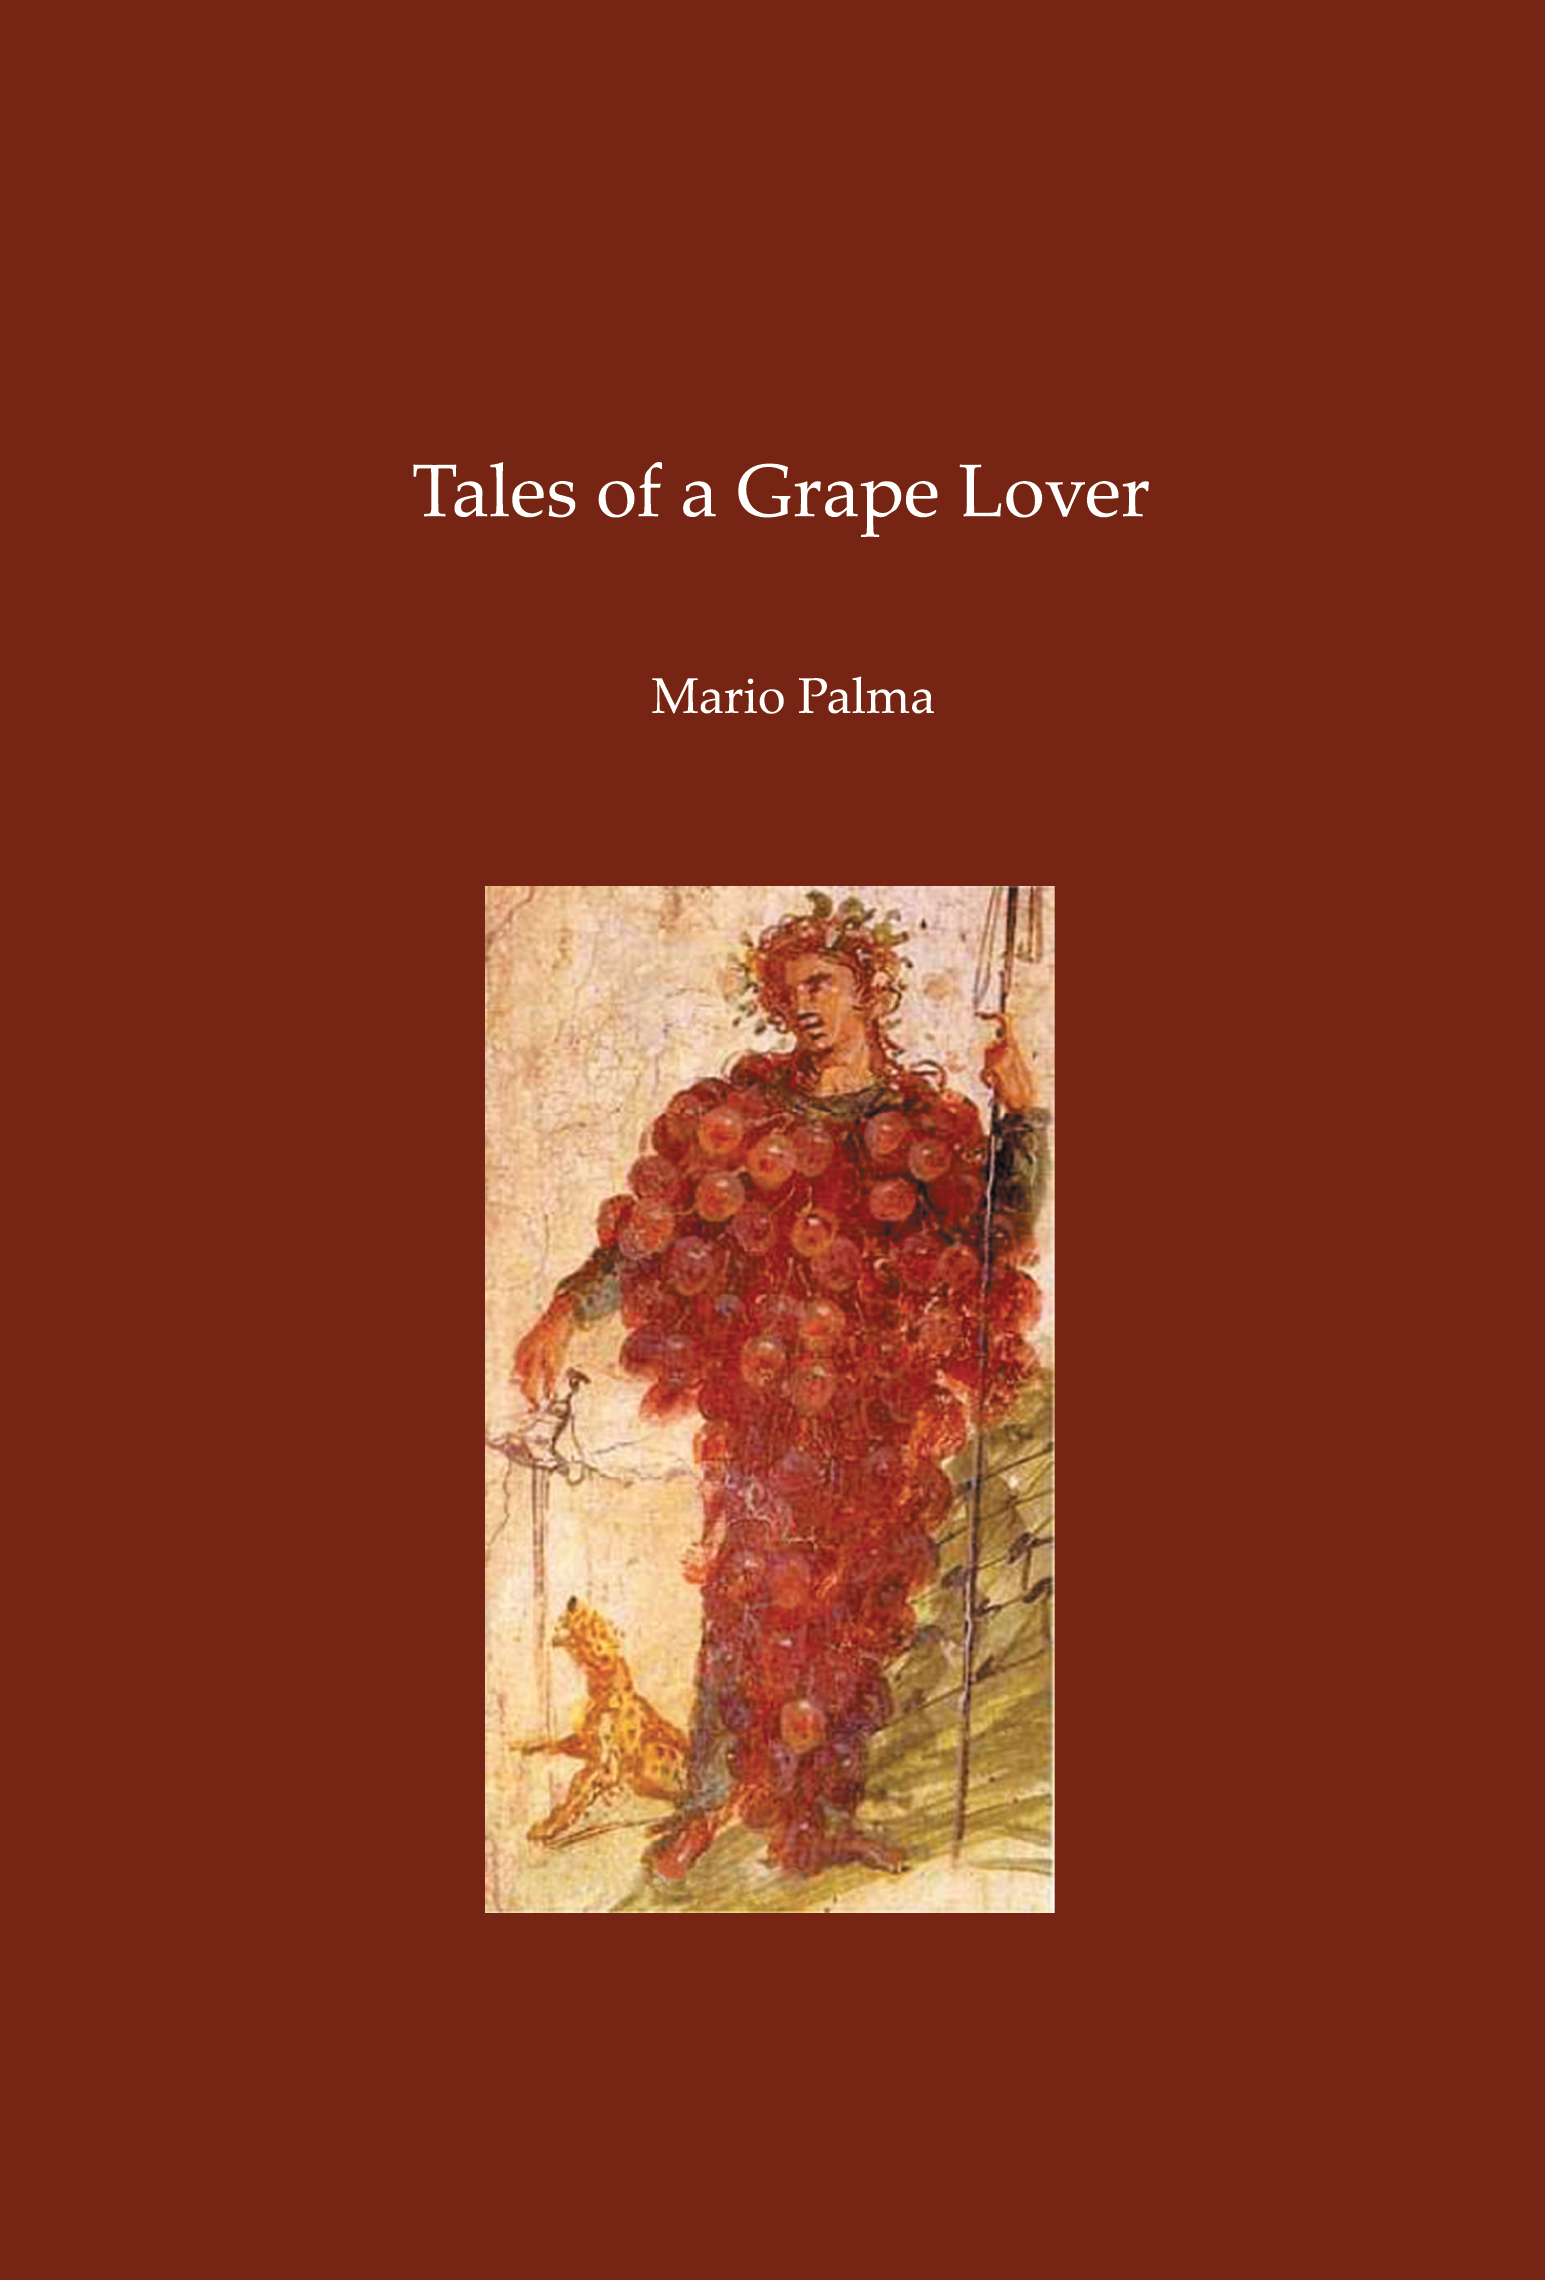 Tales of a Grape Lover